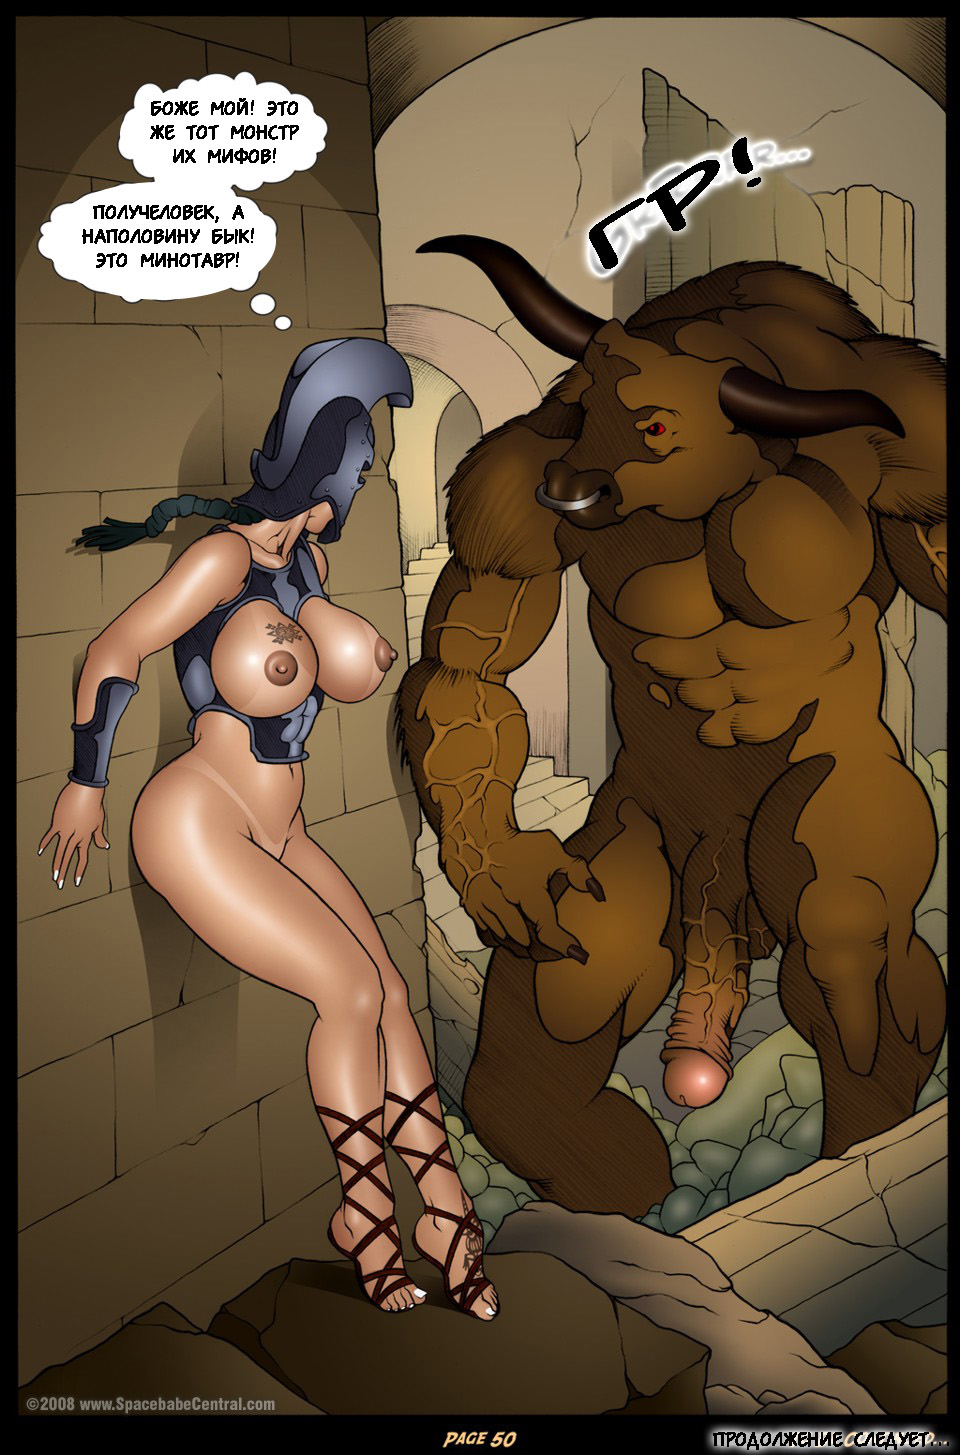 Tomb raider monster sex pica nude images